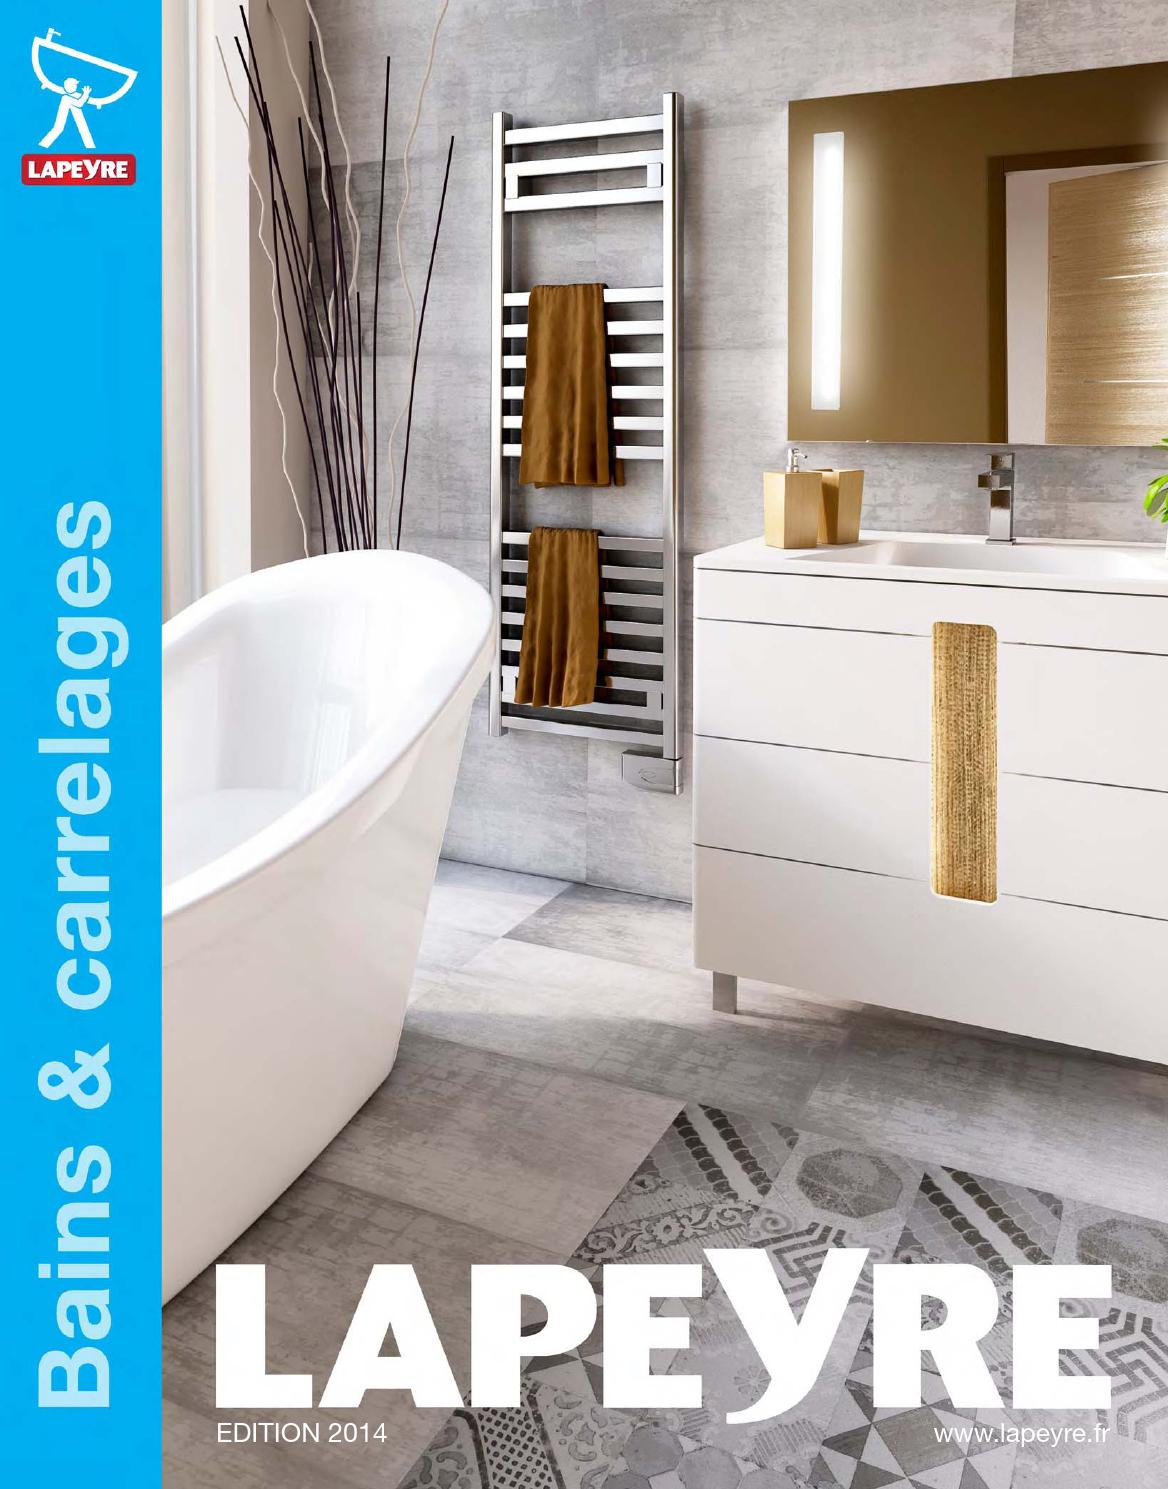 Carrelage Mural Lapeyre Catalogue Lapeyre Bains Carrelages 2014 By Joe Monroe Issuu